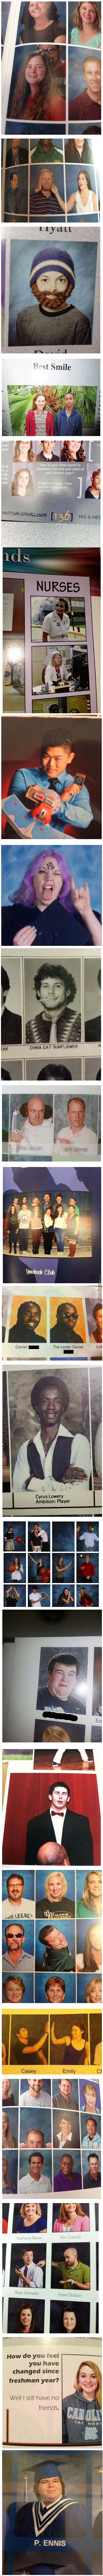 The Funniest Things Ever Spotted In A Yearbook